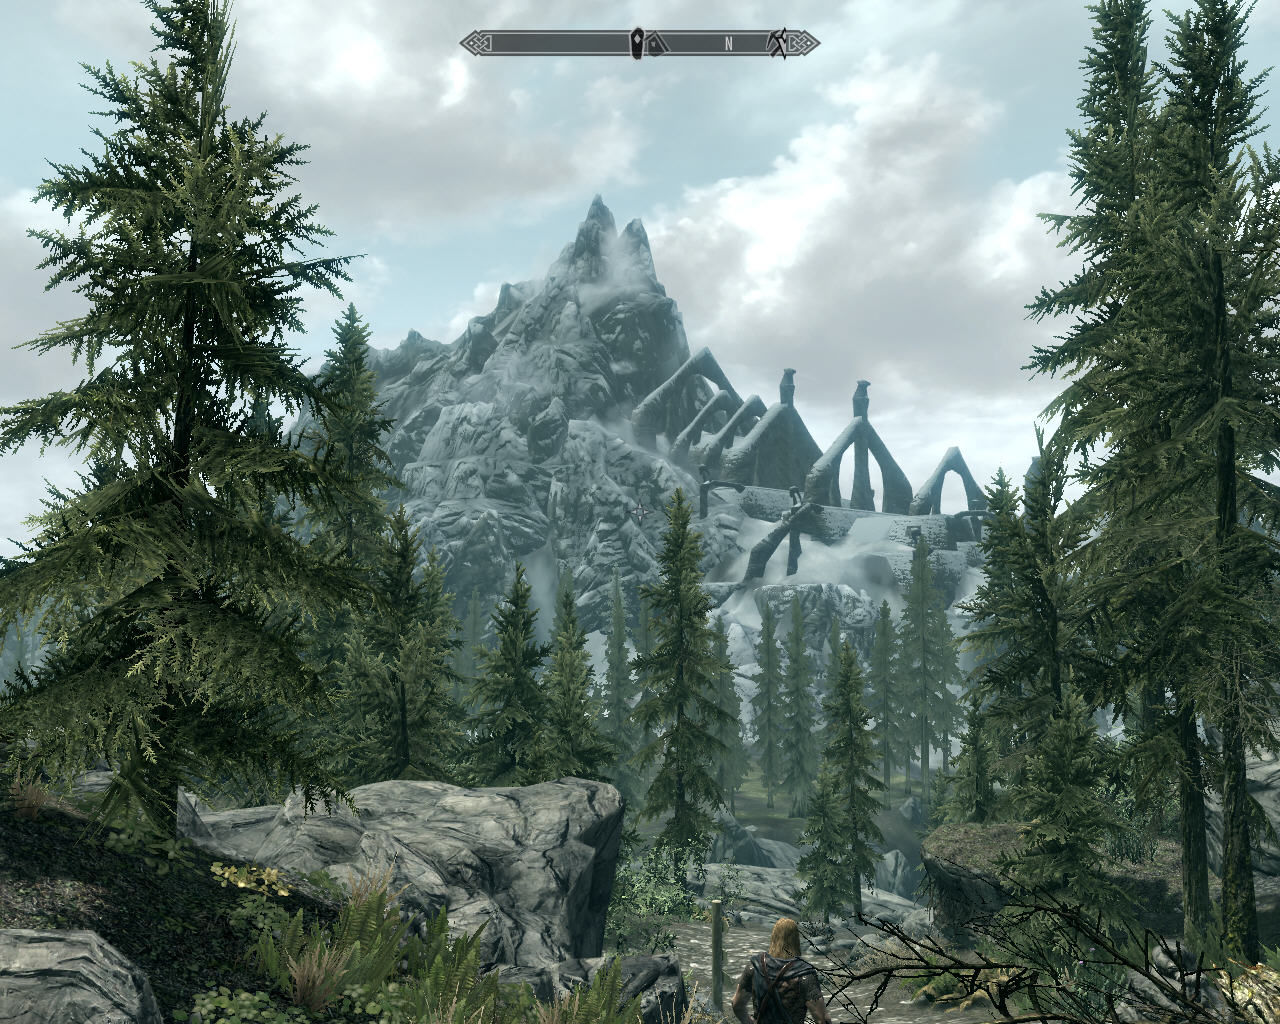 The Elder Scrolls V: Skyrim Windows Forest and mountains - let us begin our travel!